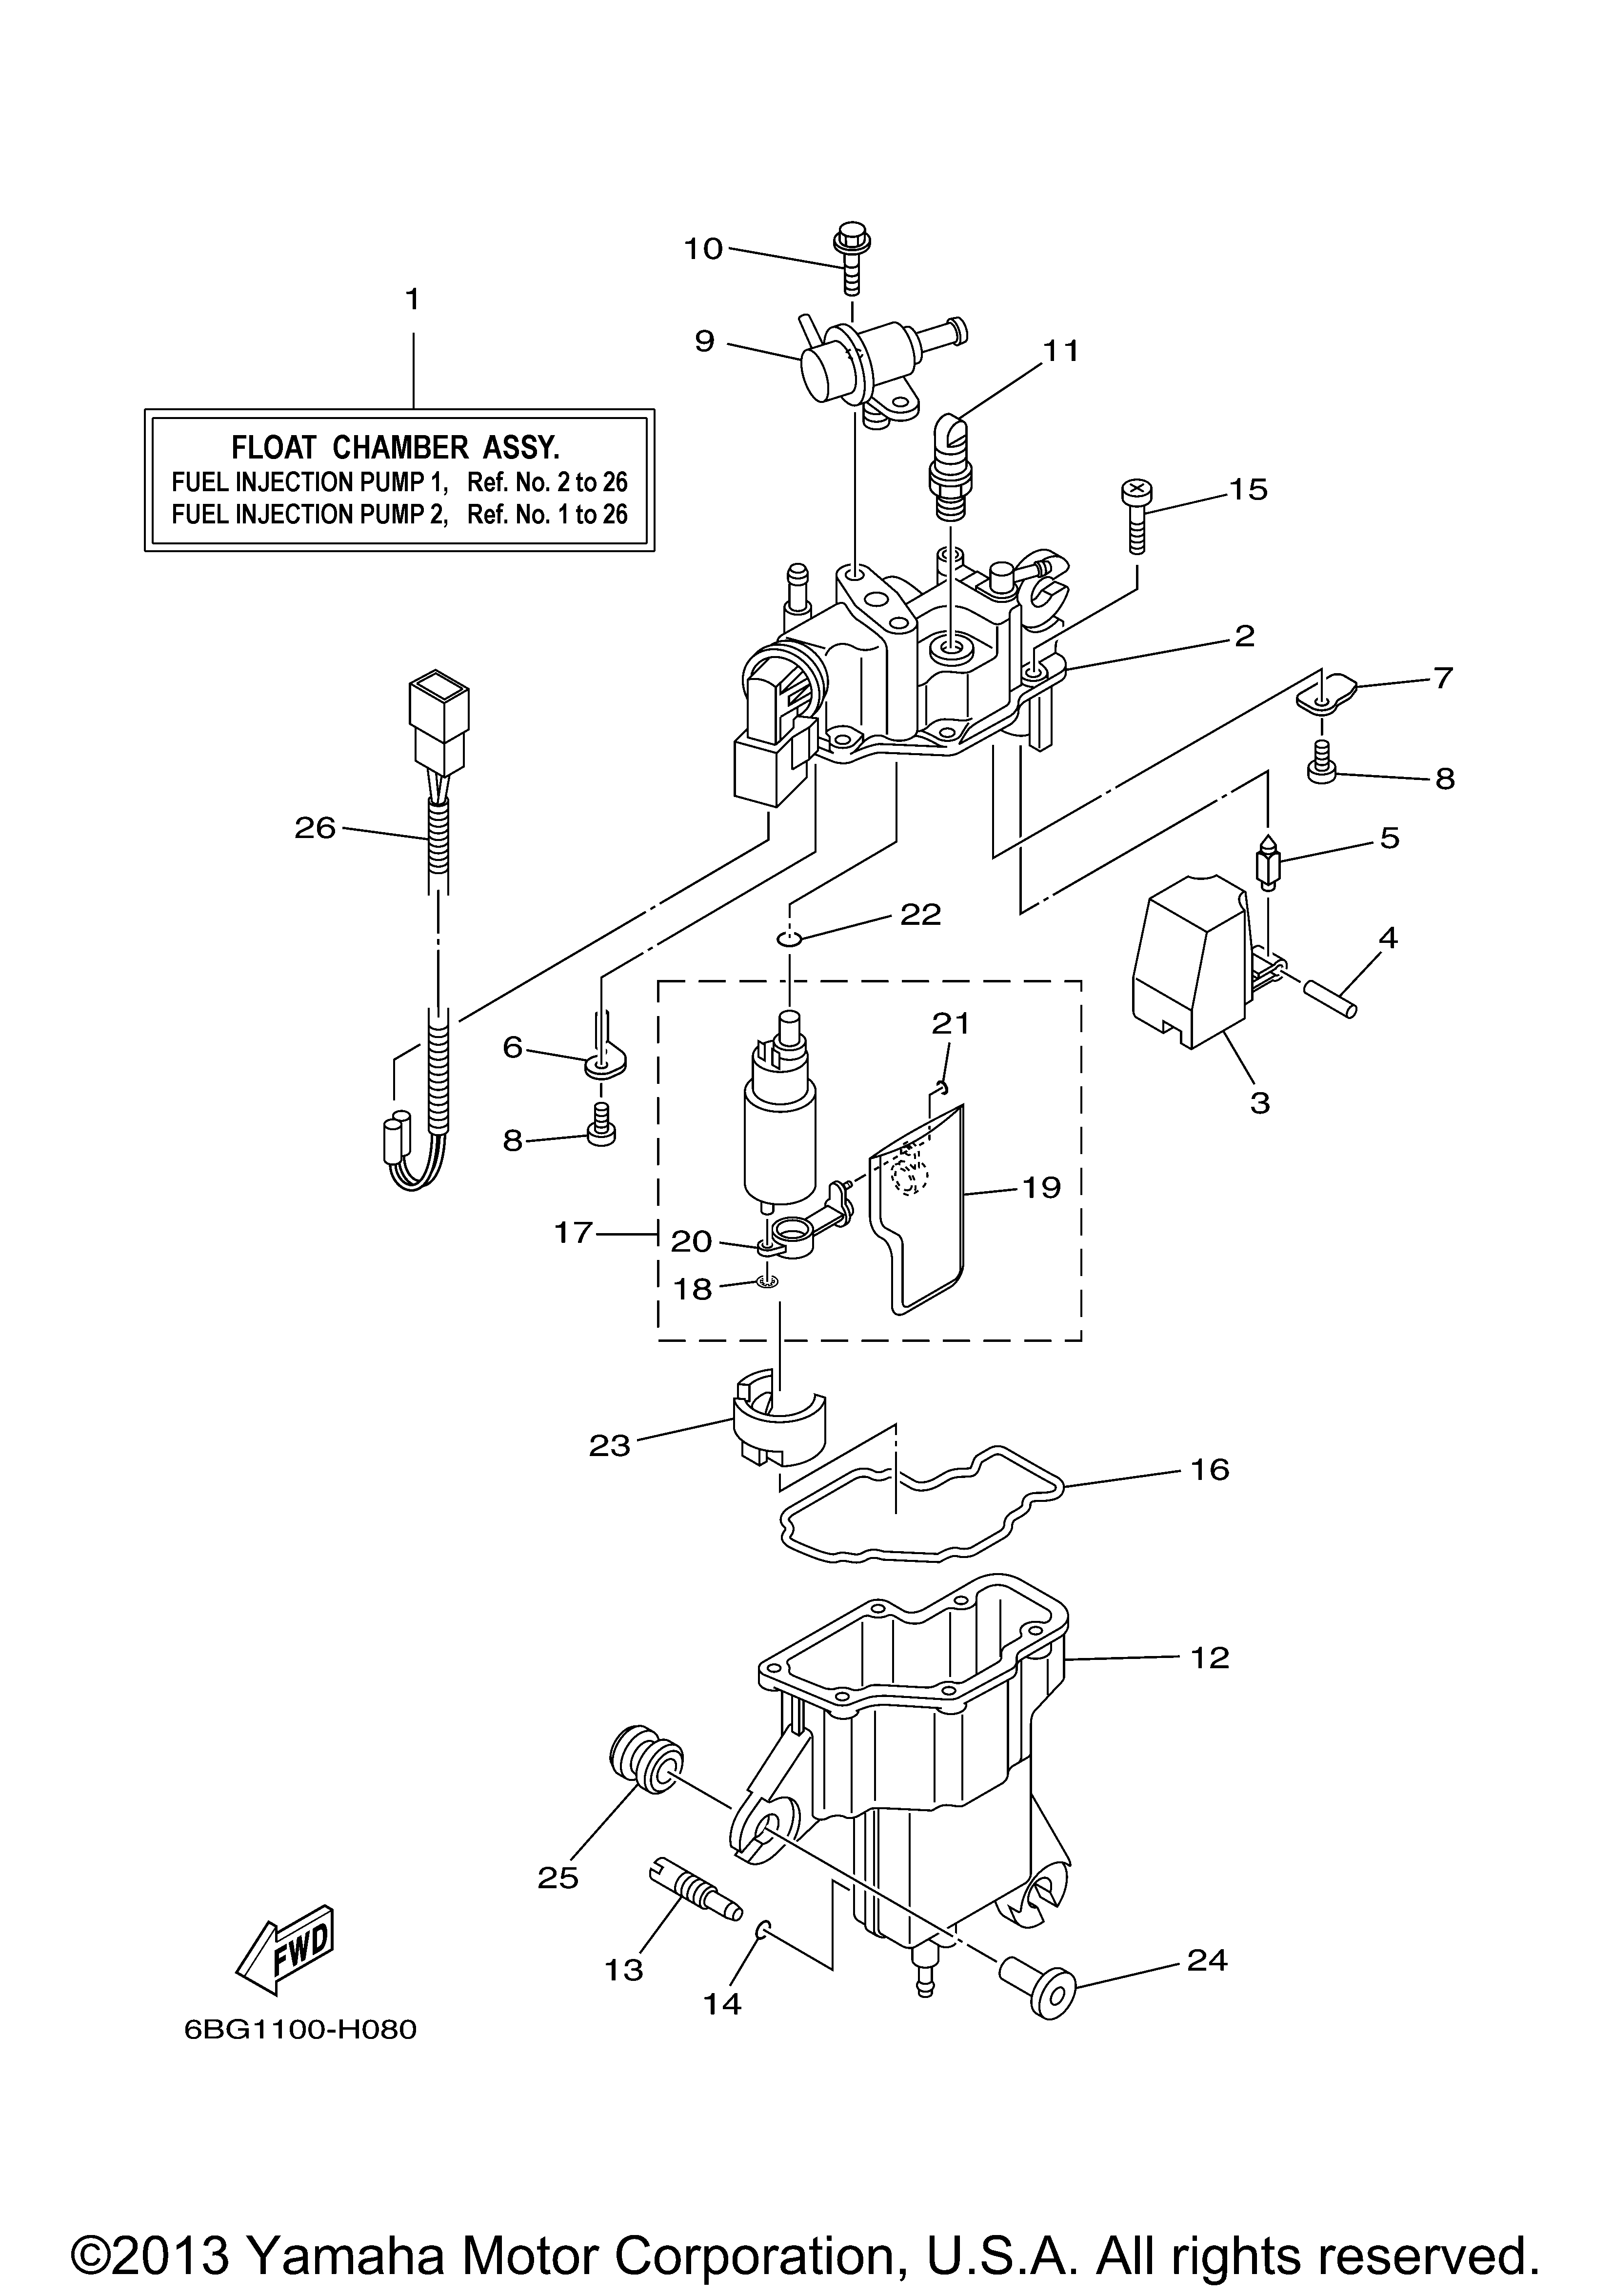 Yamaha Outboard Fuel Diagram Trusted Wiring Diagrams Gauges Wire 40 Hp F40la 0112 Injection Pump 1 Gauge